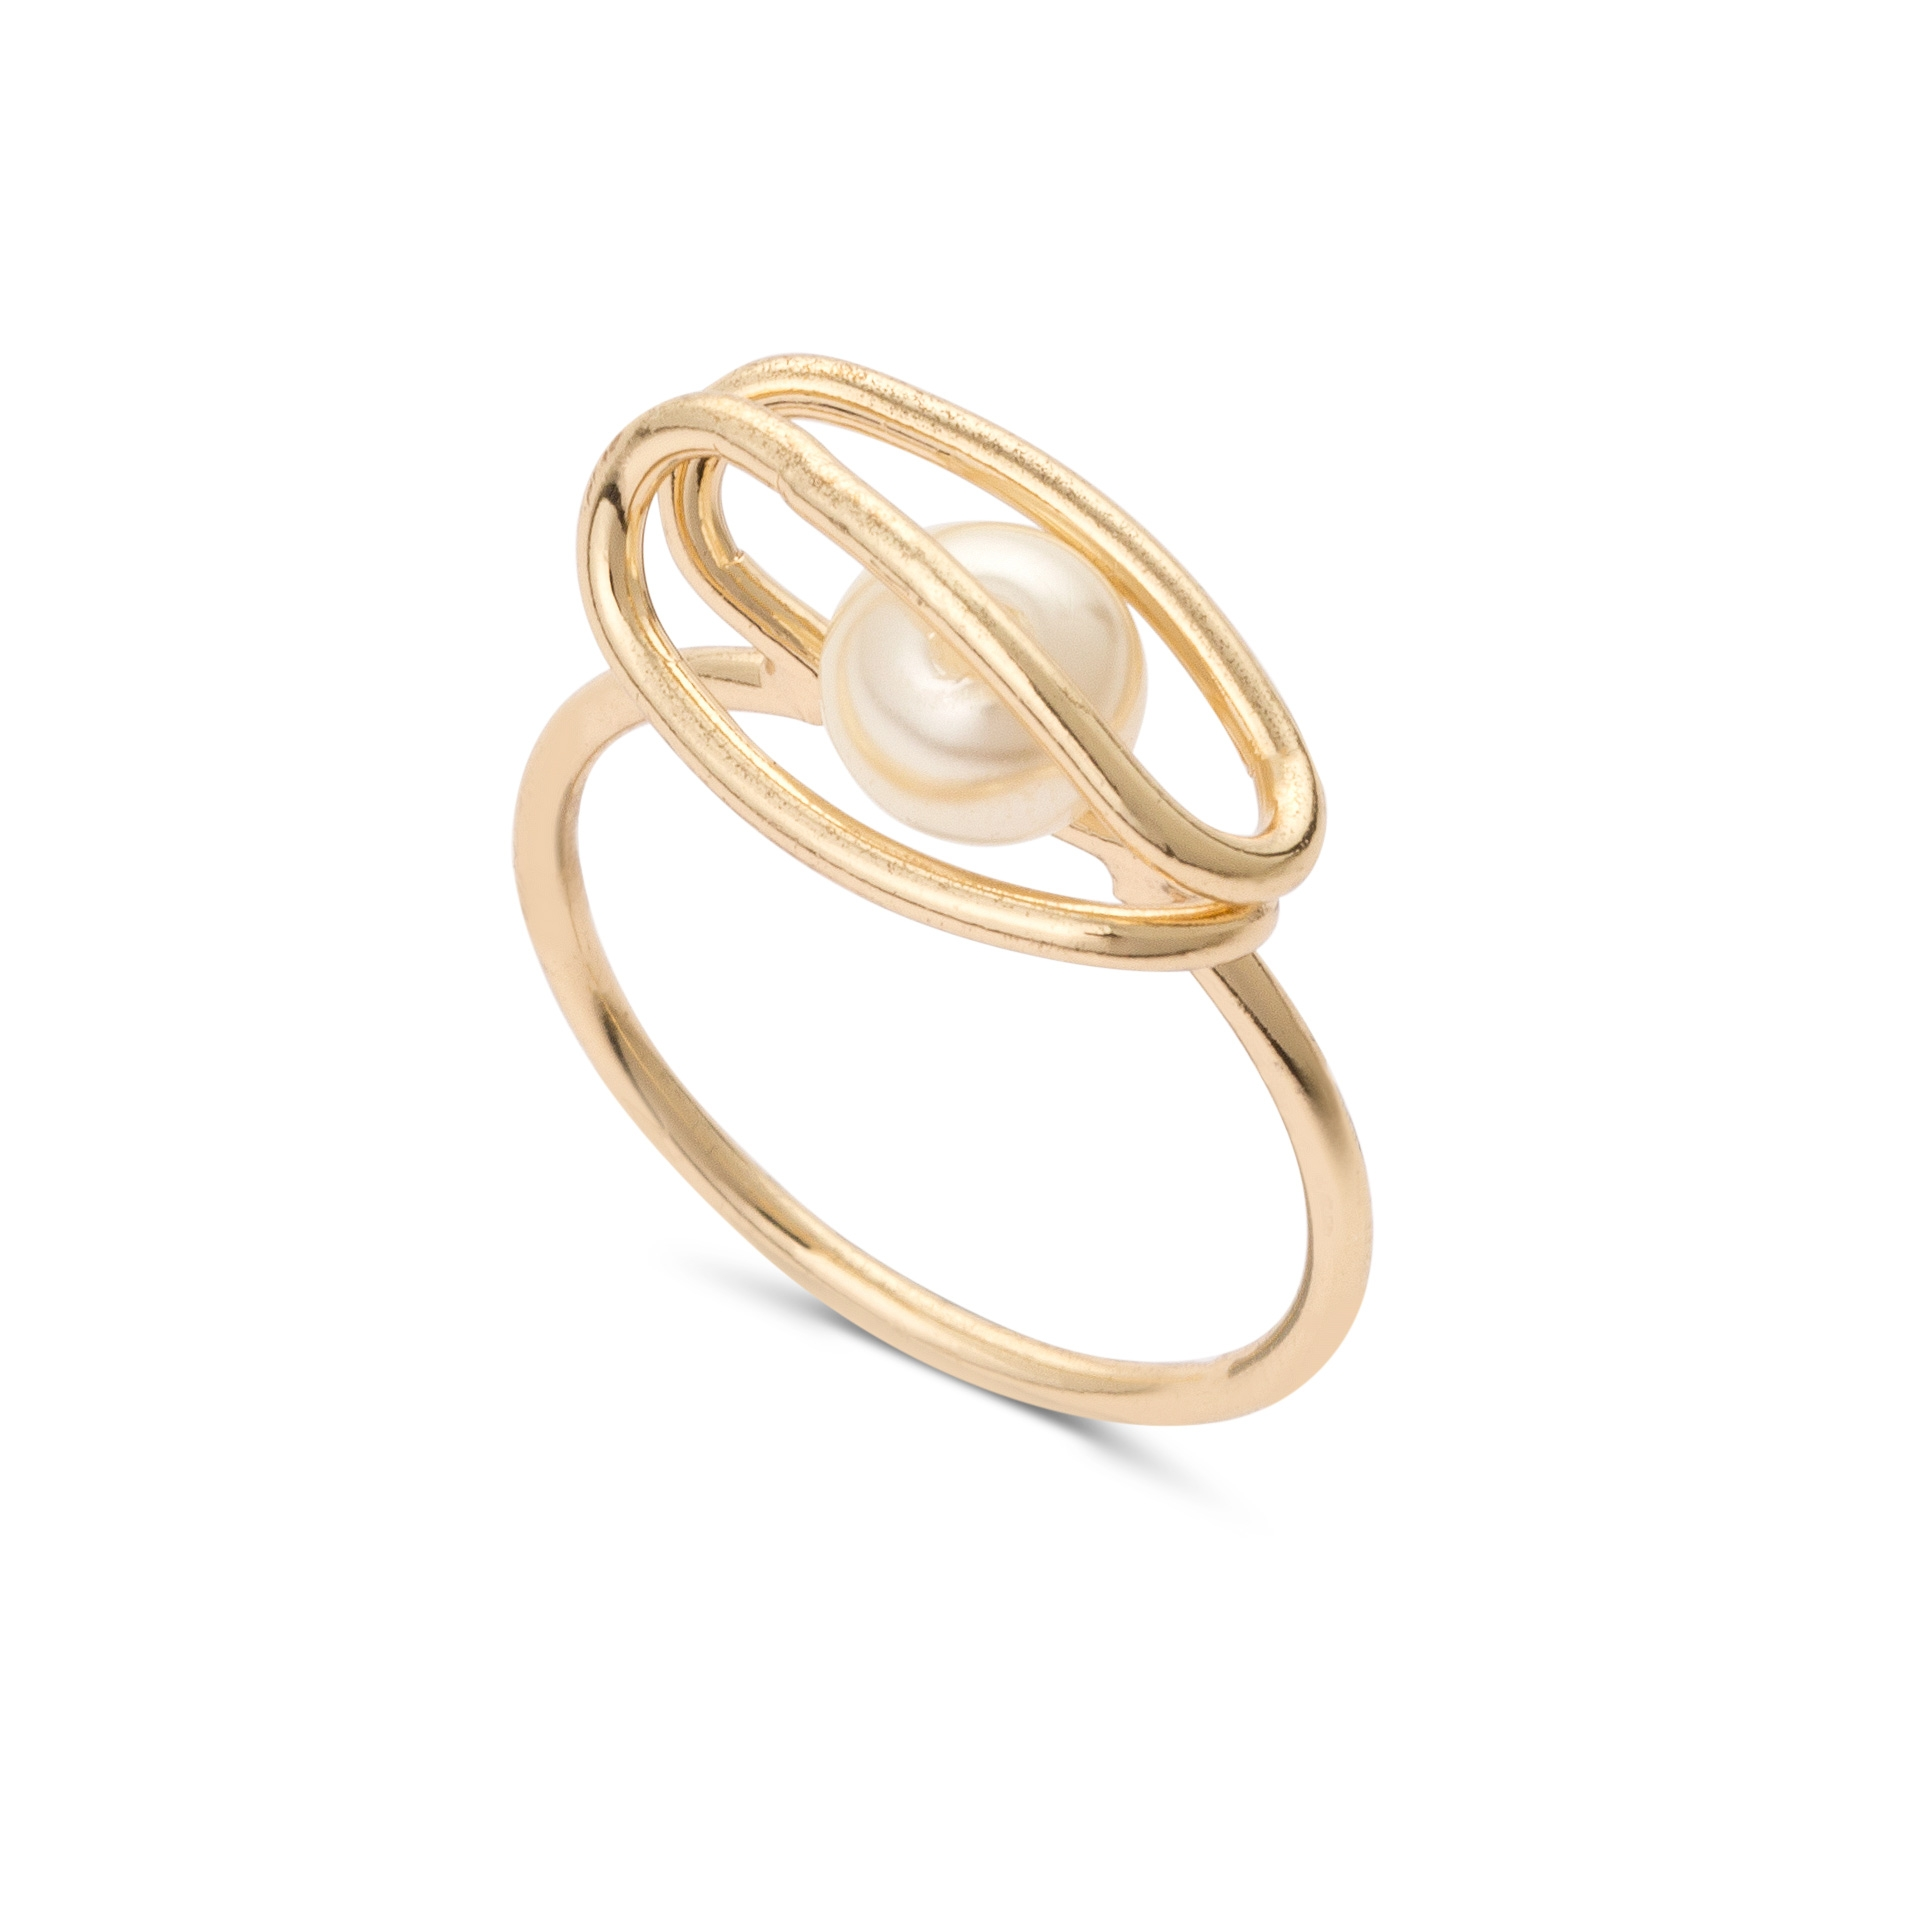 ring bonas rings rng oliver prl gold faux bm cage caged jewellery katalin